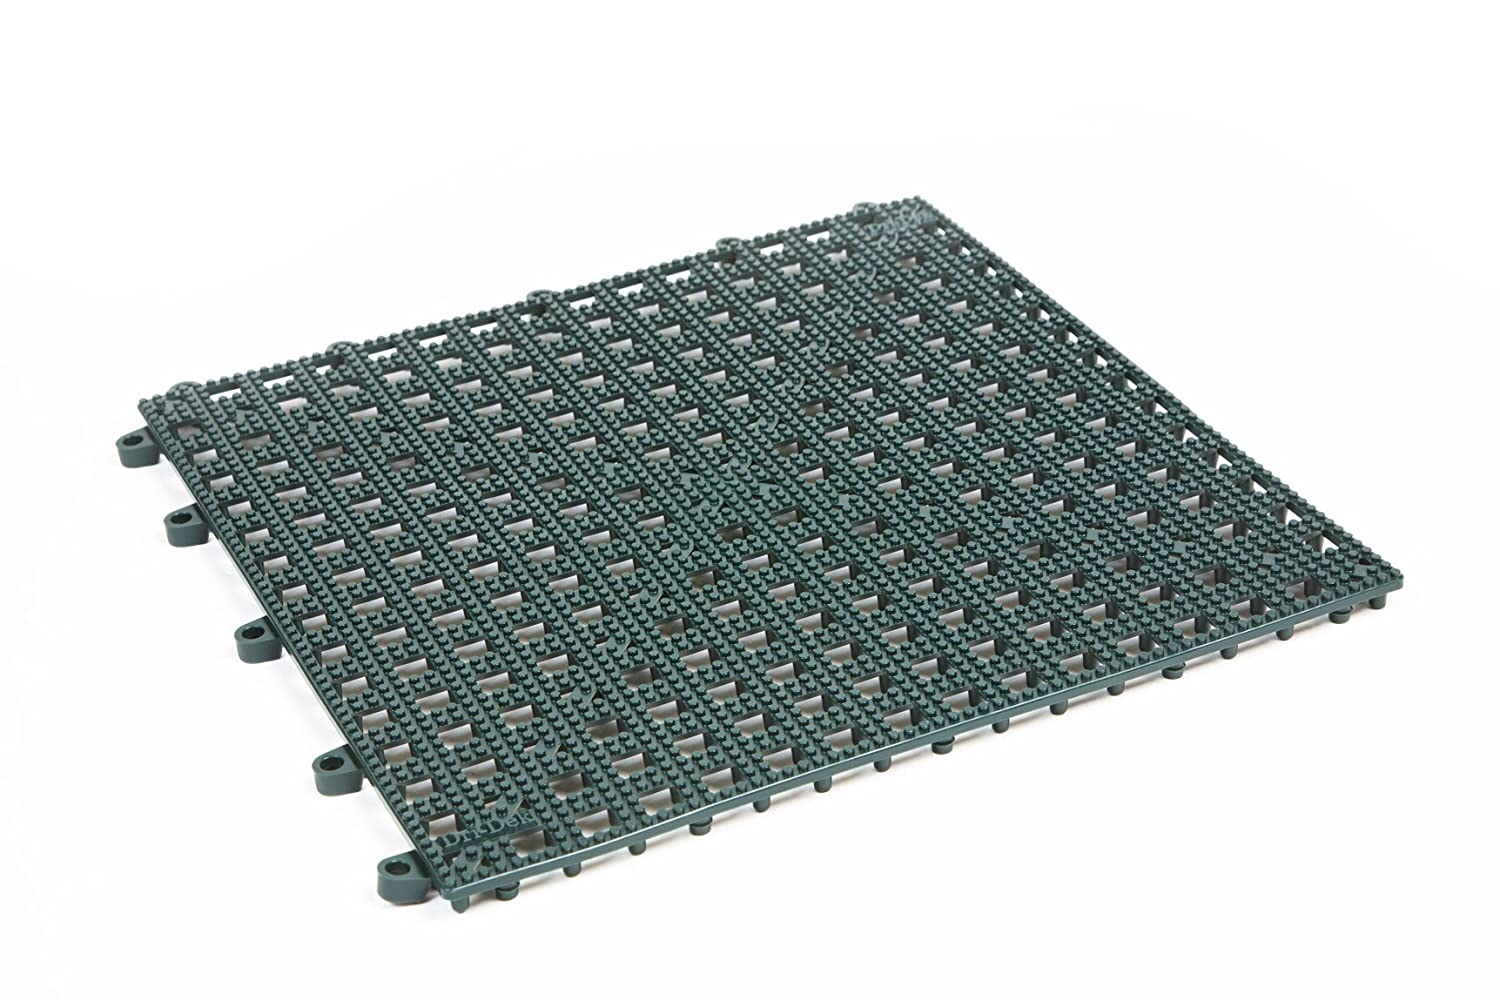 12-Pack, Hunter Green 1x1 Interlocking Mats Dri-Dek Pickup Truck Bed /& Service Work Truck Compartment Liner